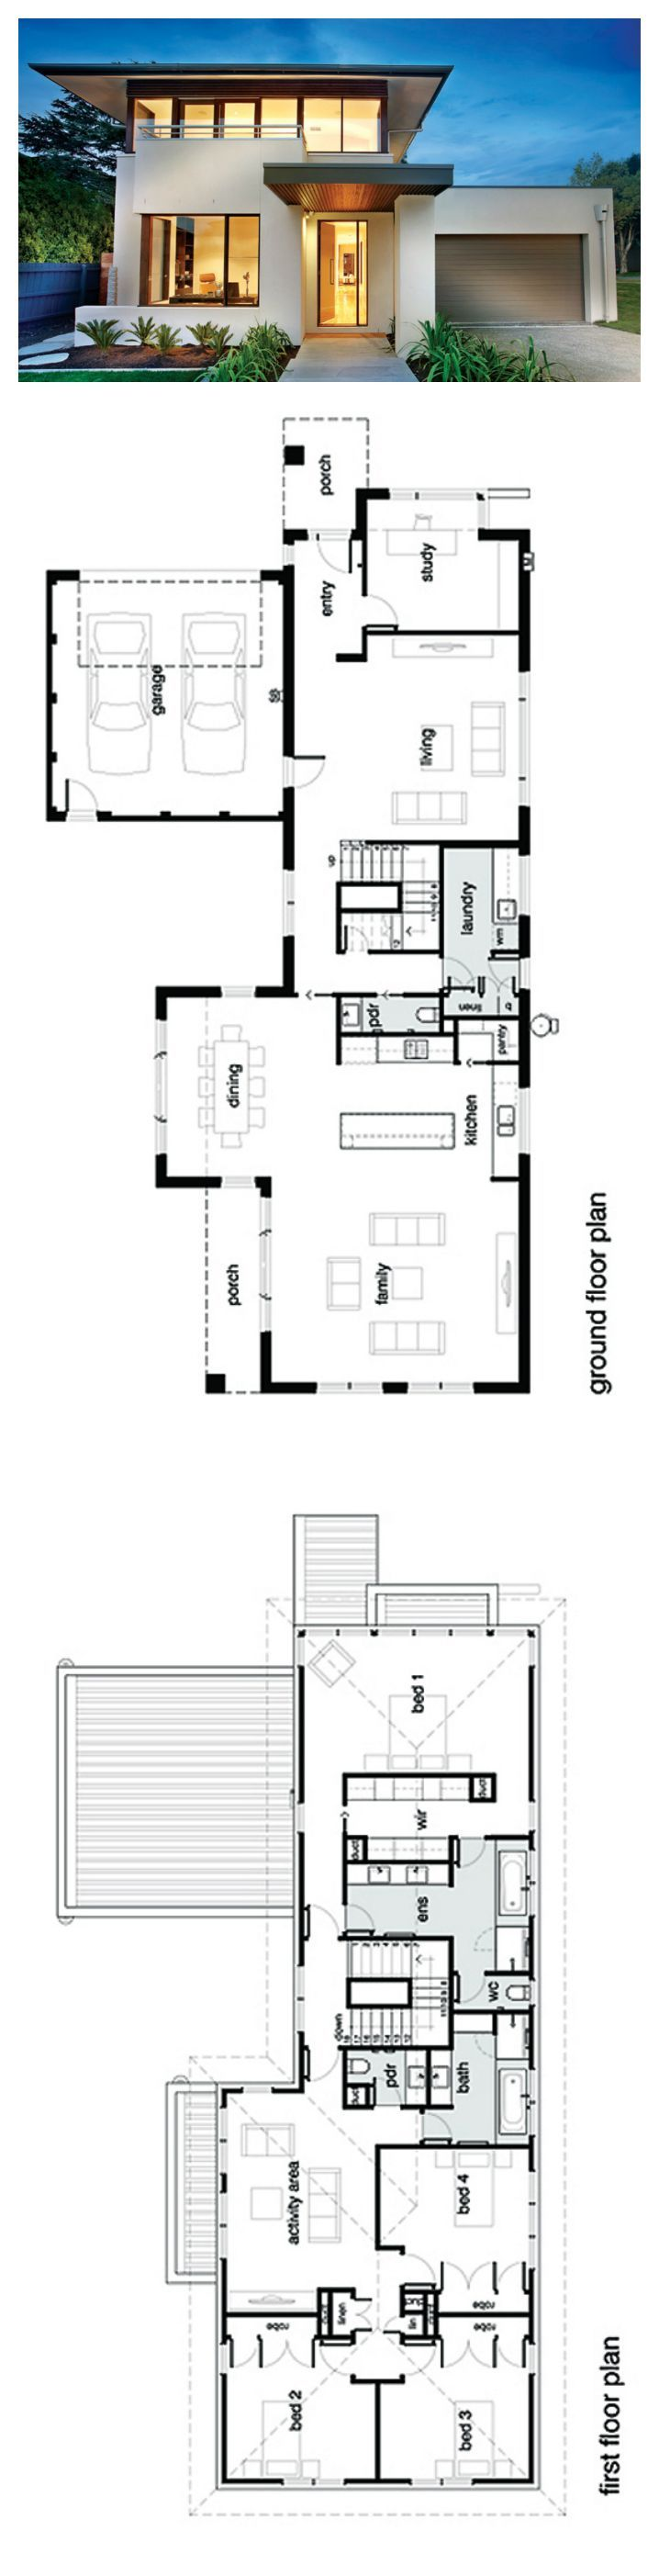 plan 496 18 3584 sf 4 bed study 25 bath bathroom modernfloor - Modern House Floor Plans